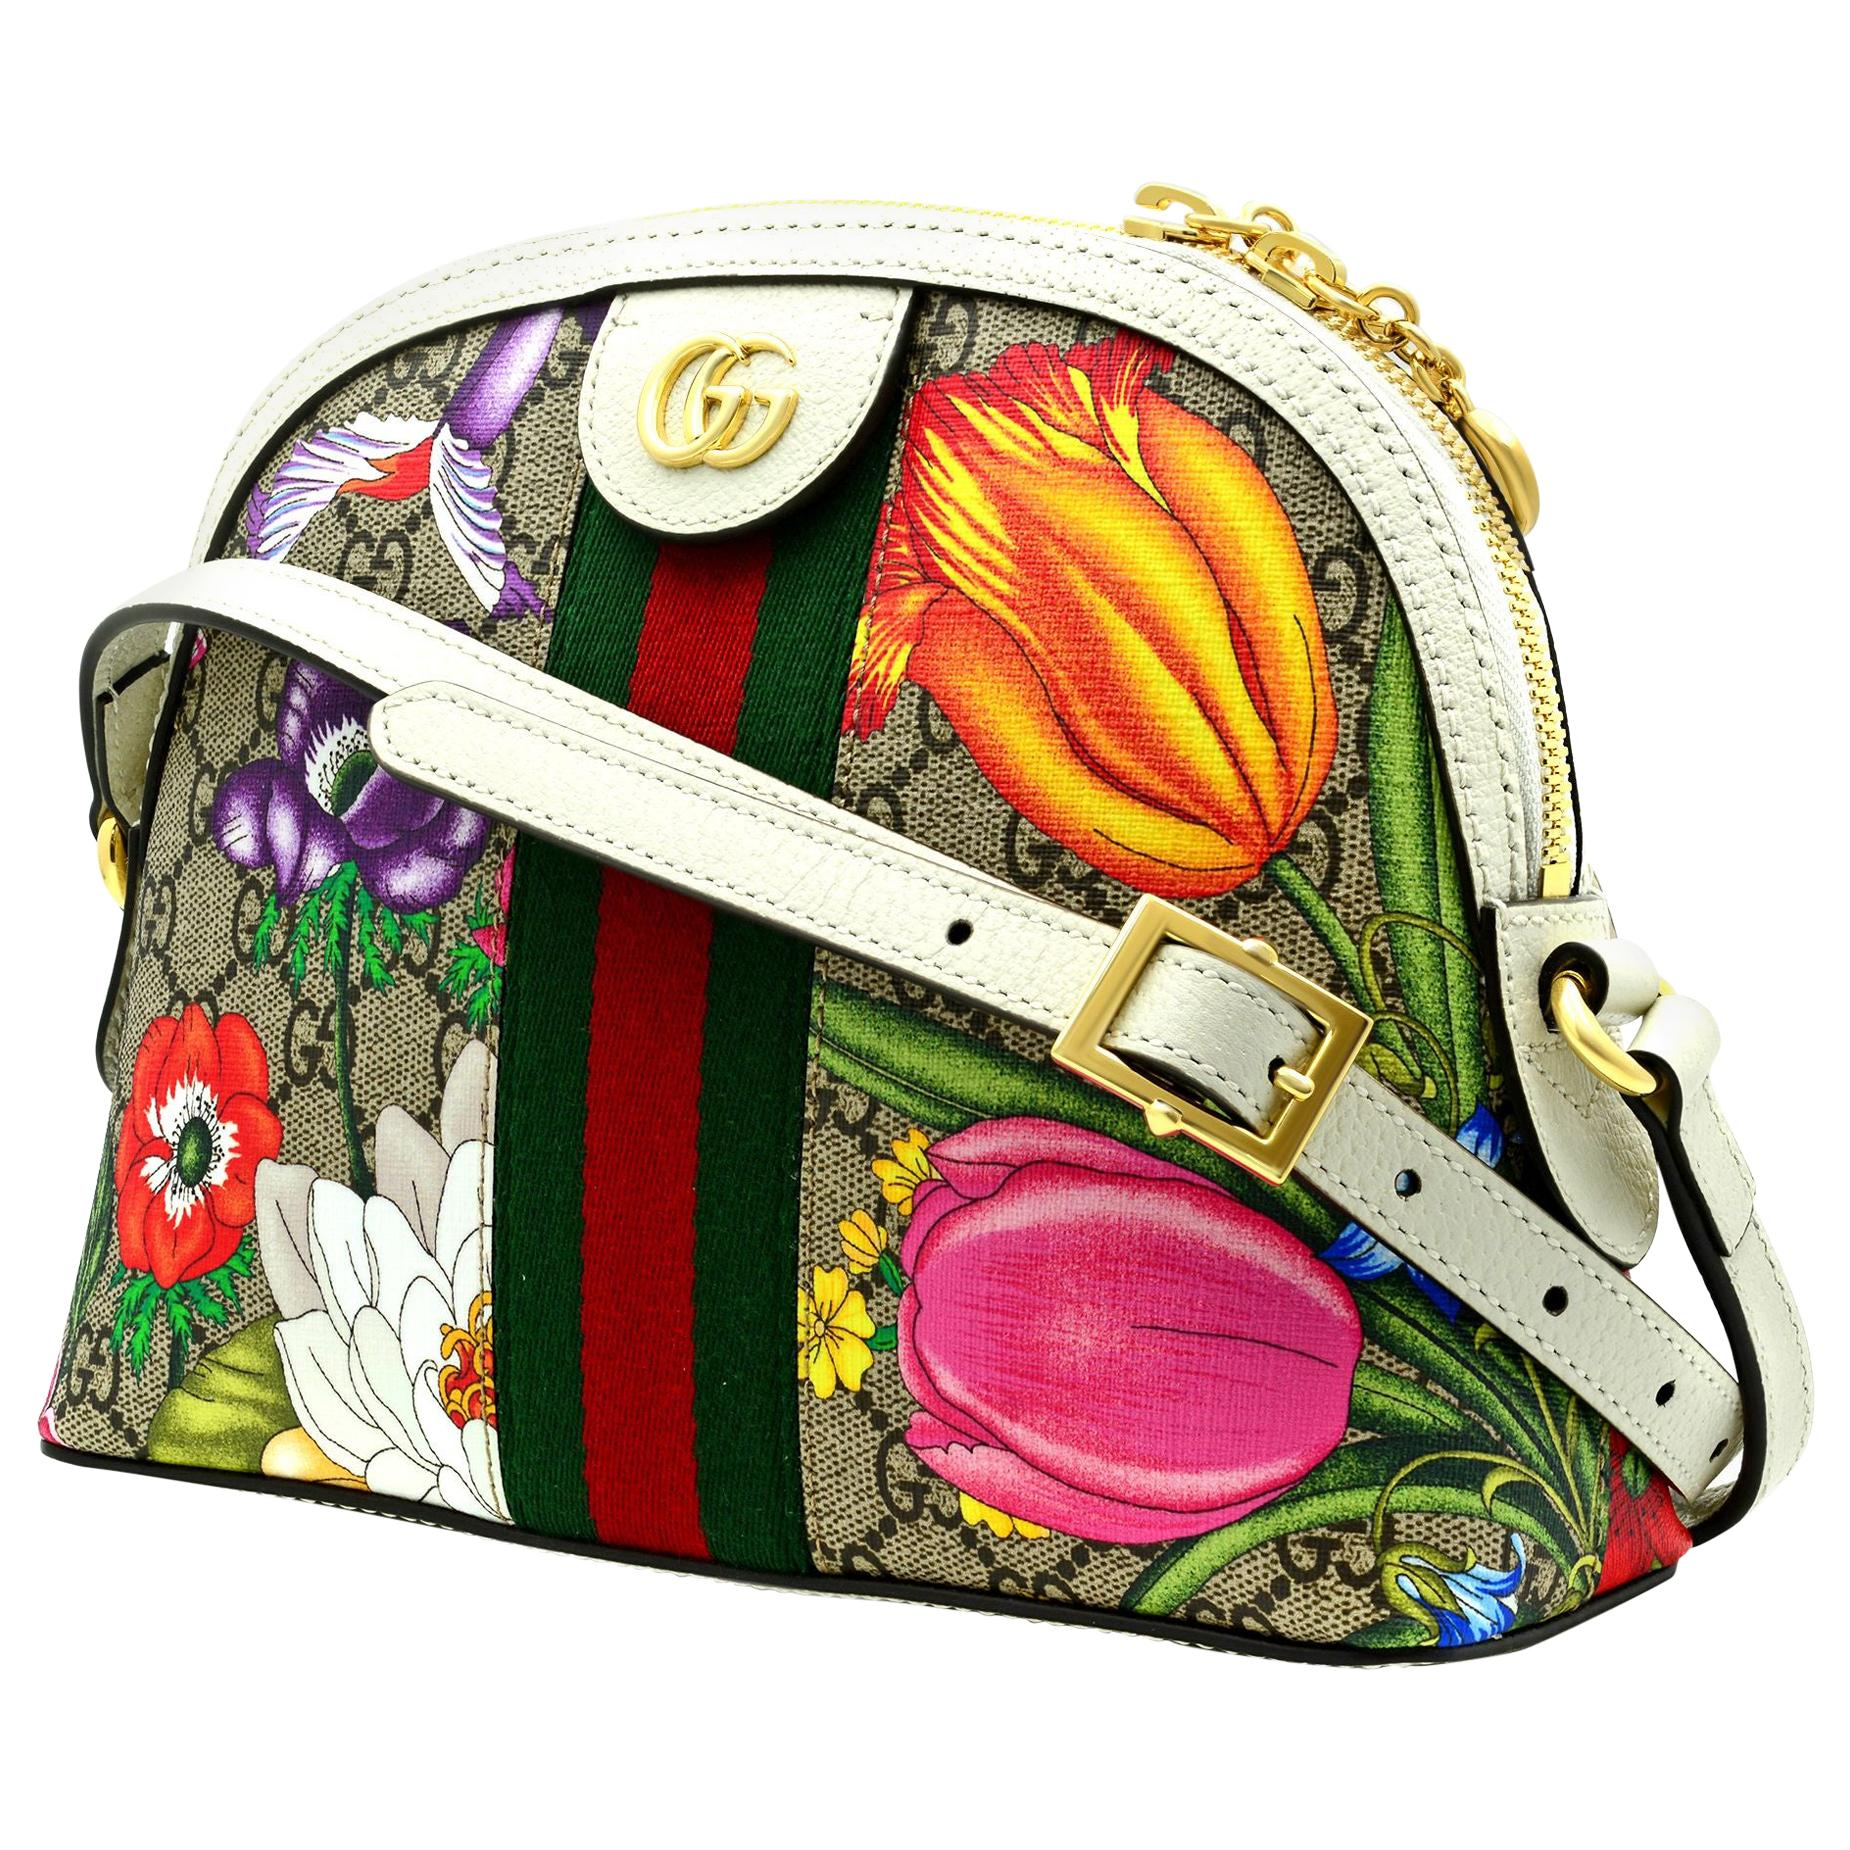 Gucci Ophidia GG Flora Small White Ladies Crossbody Bag